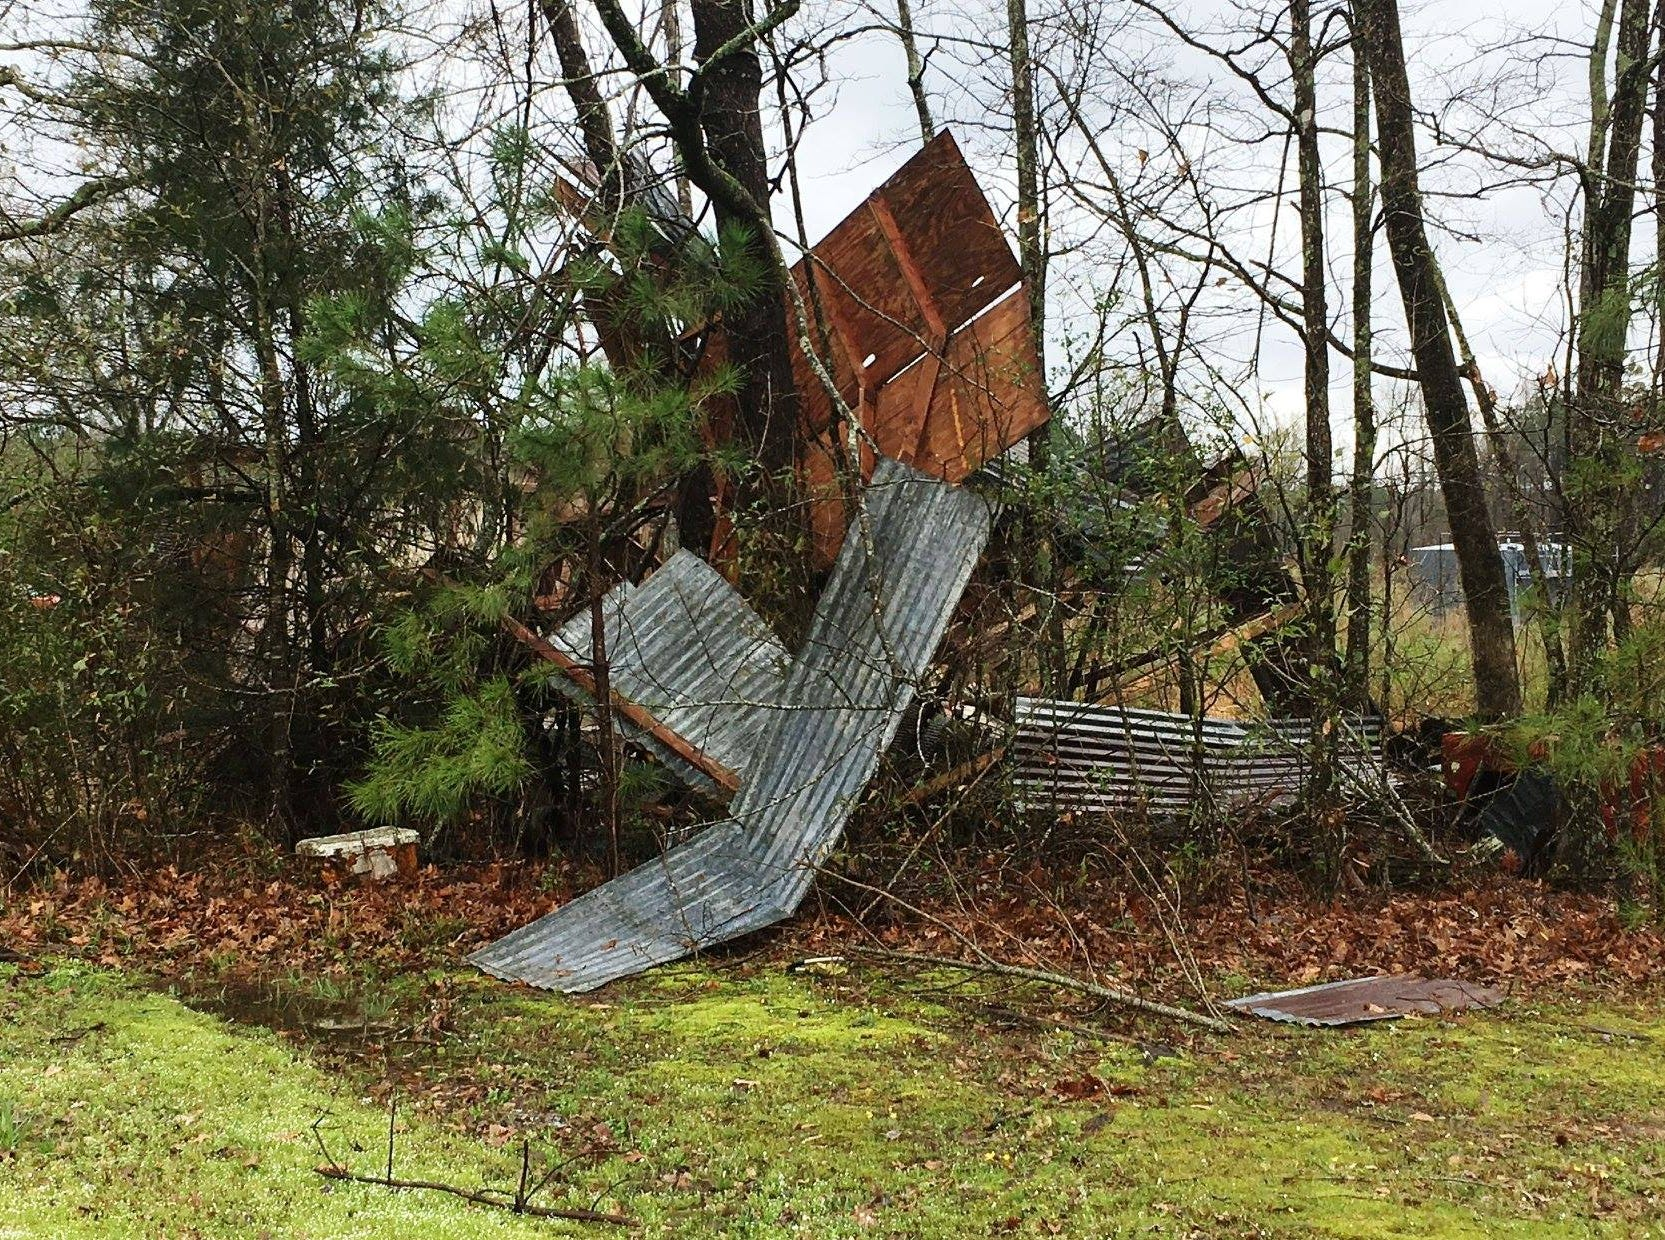 Tornado damage on the 1100 block of Mott Road in Bossier Parish. Three category EF1 tornadoes were reported to touchdown in Bossier, Caddo and Webster parishes on March 9, 2019.